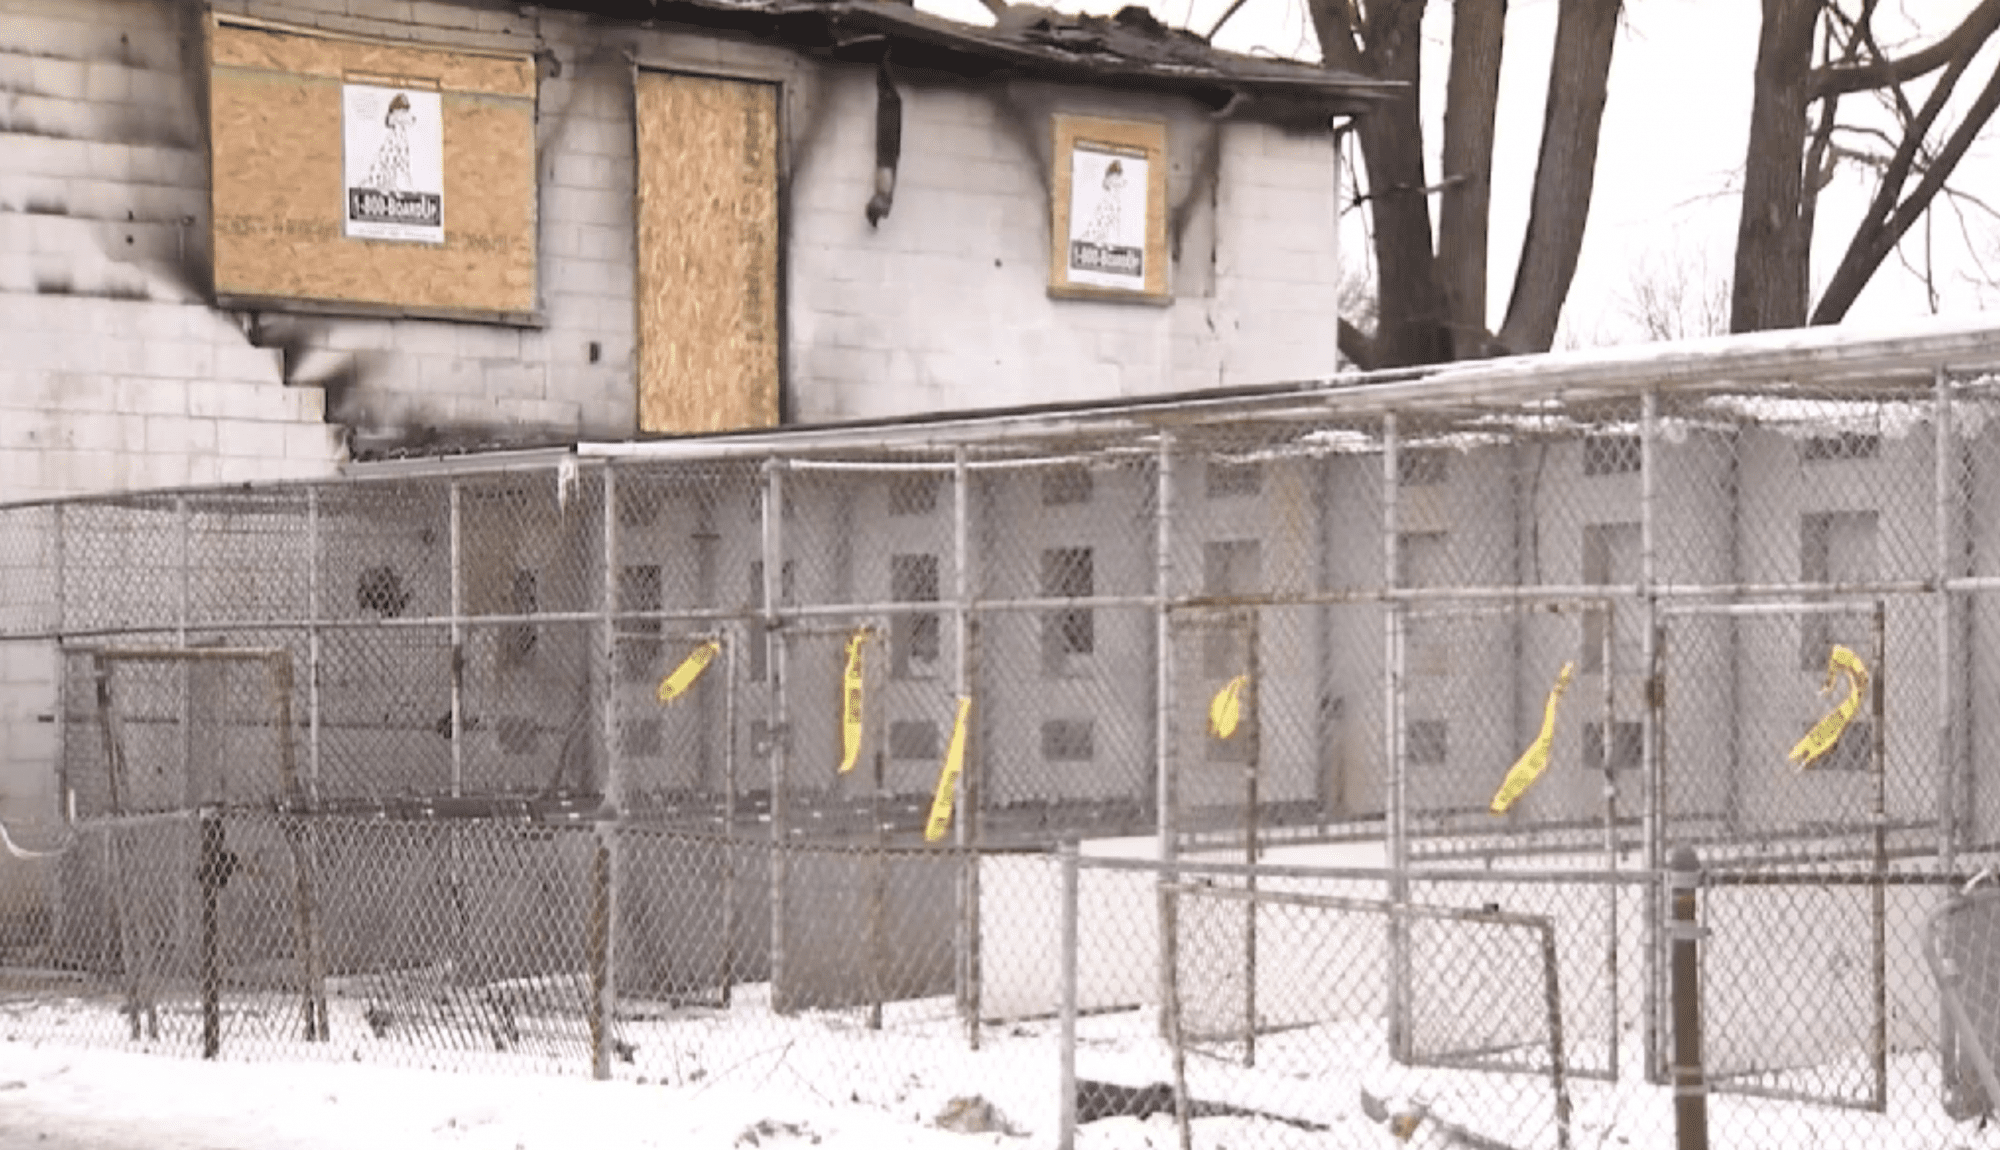 Fire kills 29 dogs, including dogs being re-trained, in West